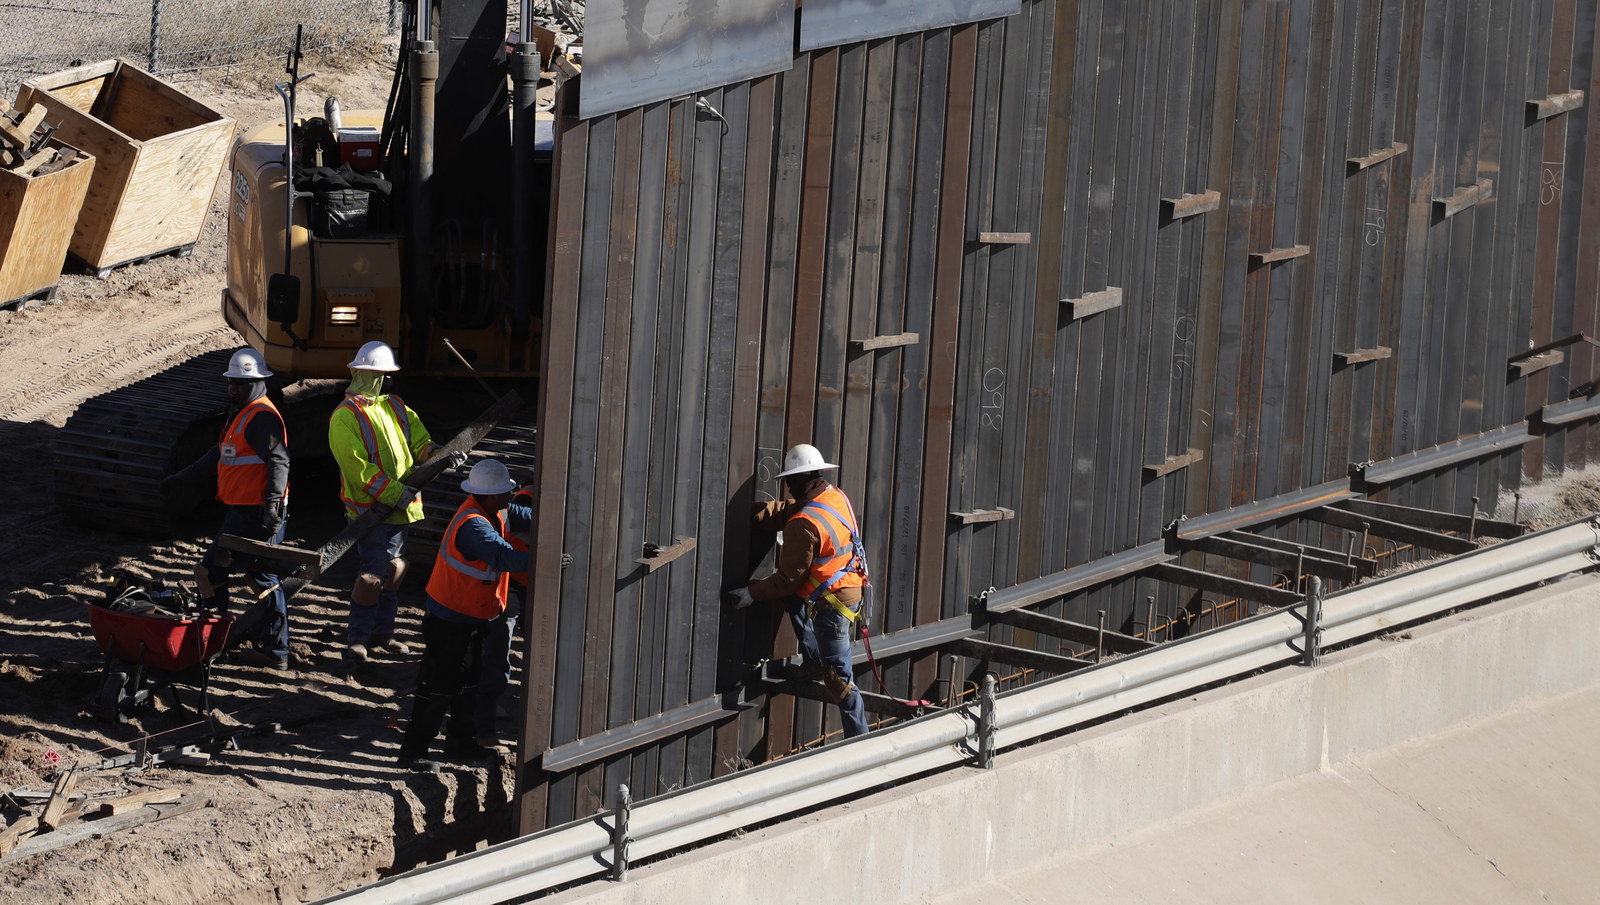 The Pentagon Will Spend Up To $1 Billion To Build Trump's Border Wall